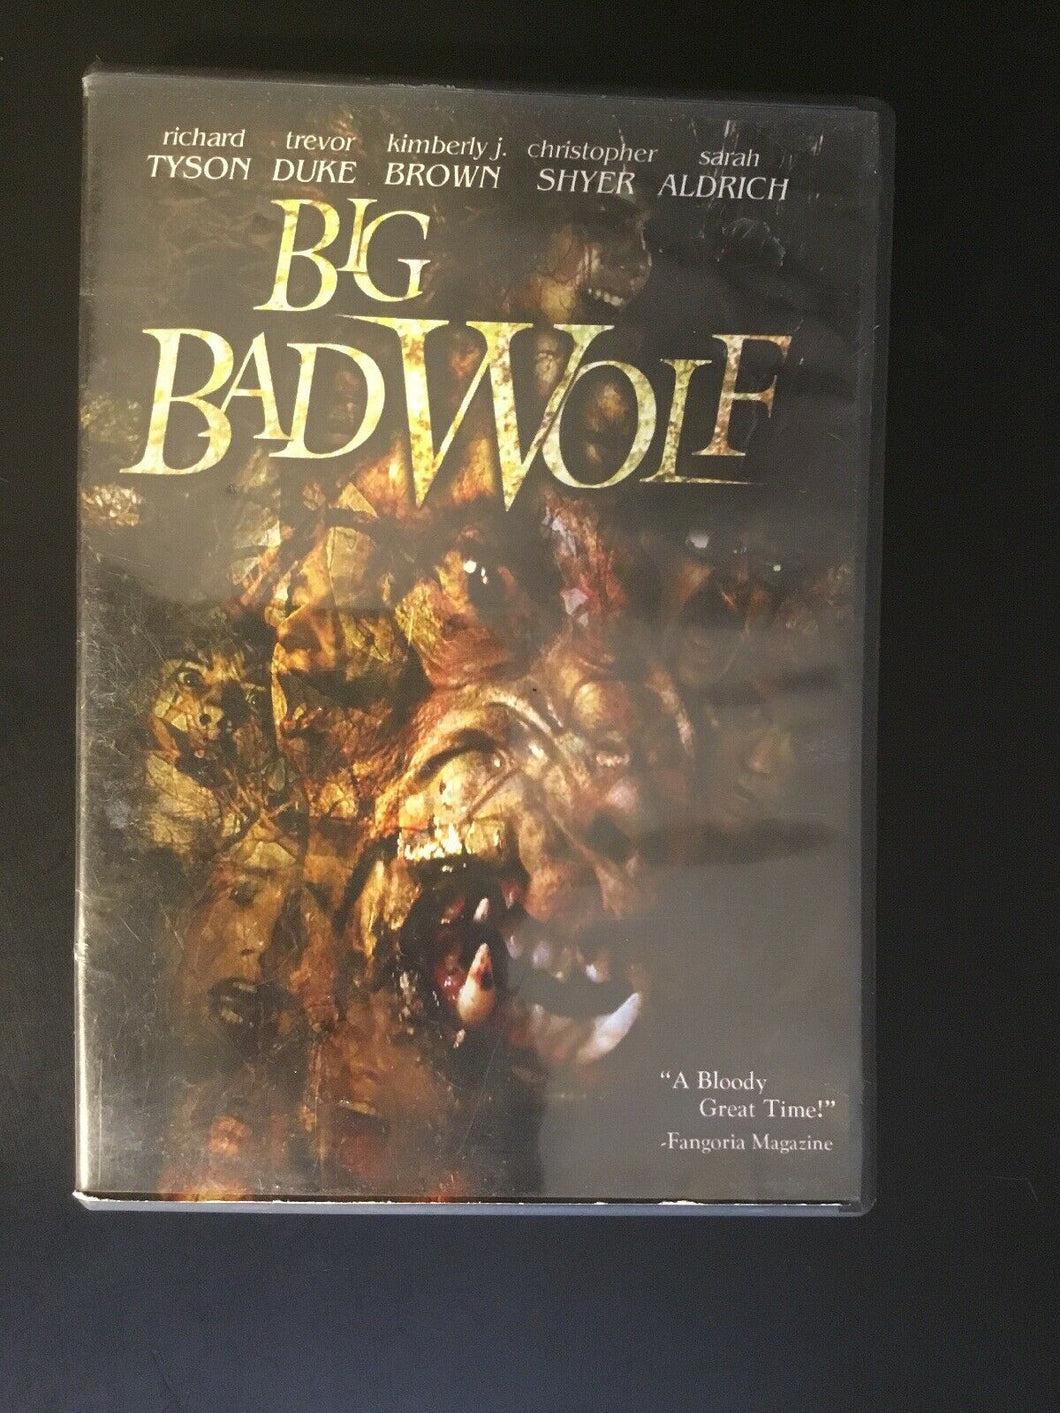 Big Bad Wolf (DVD, 2007, Conservative Art)